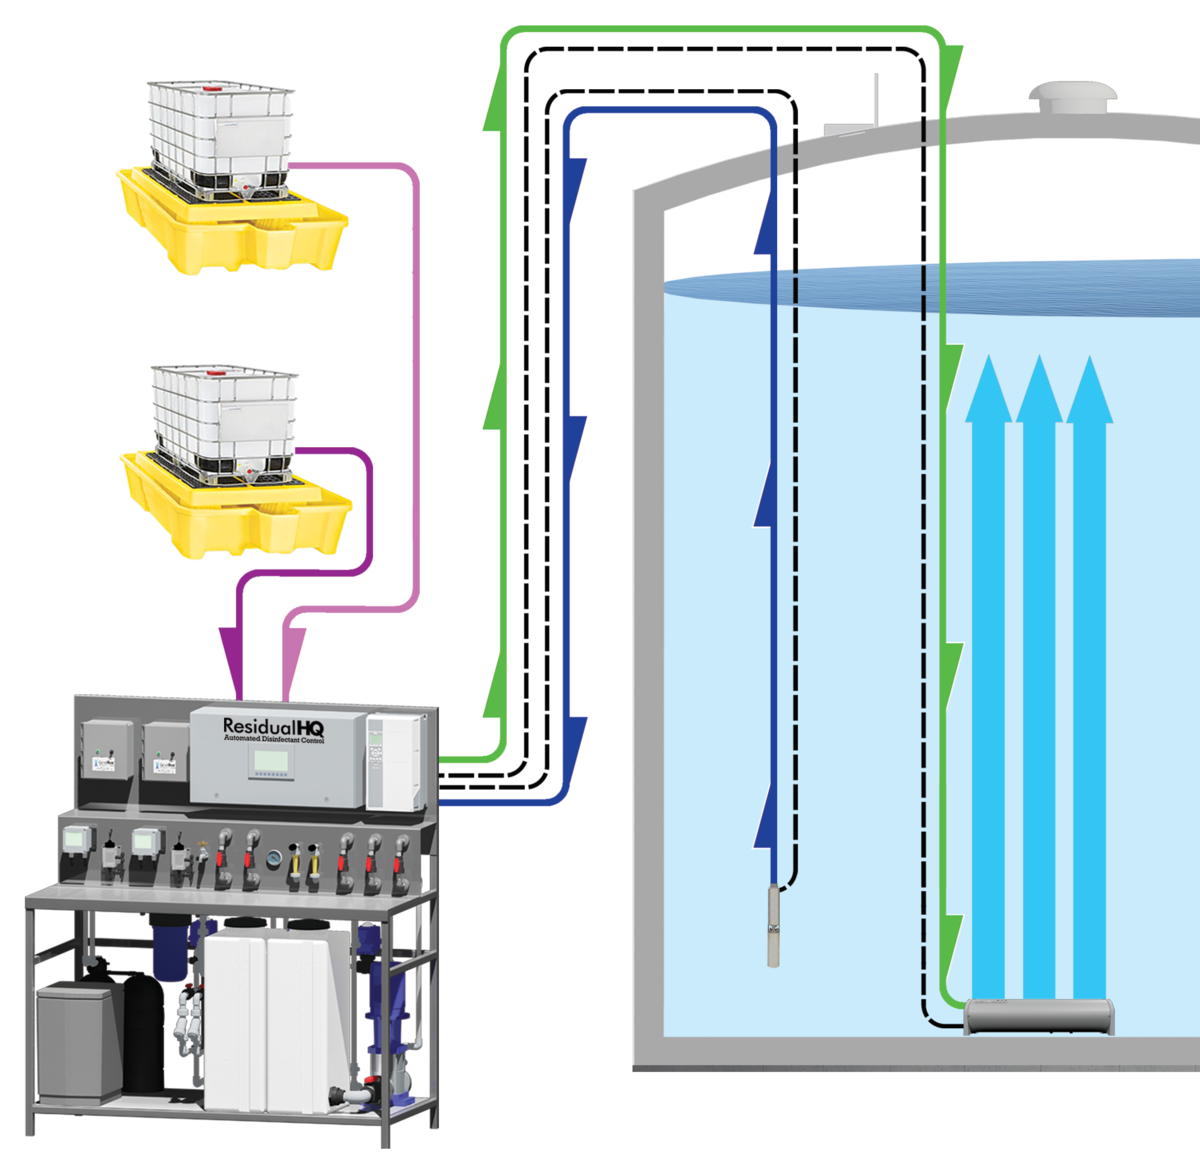 image showing the general system overview of the ResidualHQ Disinfectant Control System for potable water storage tanks